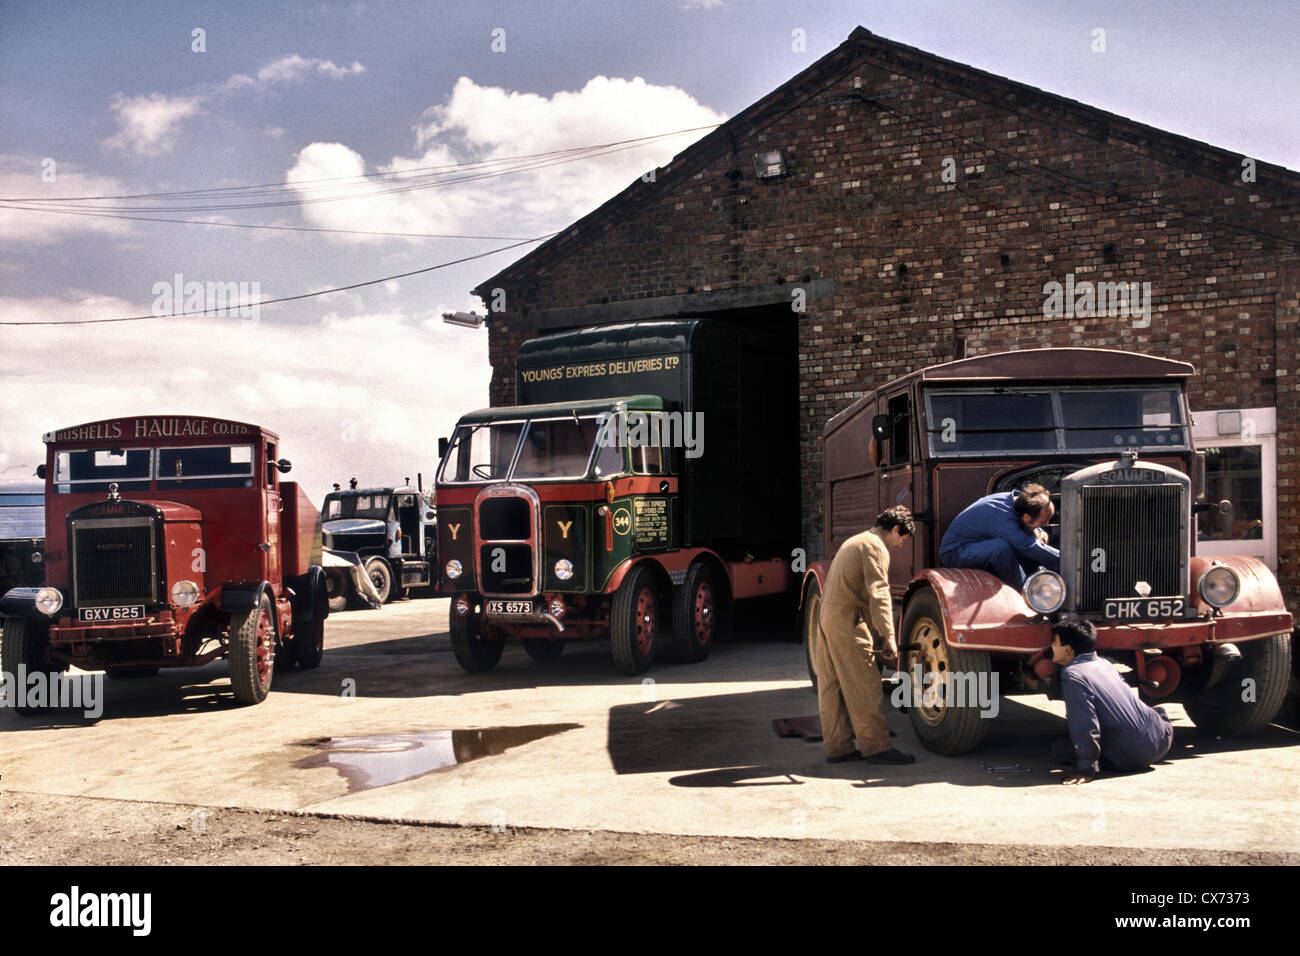 Scammell lorry workshop. - Stock Image